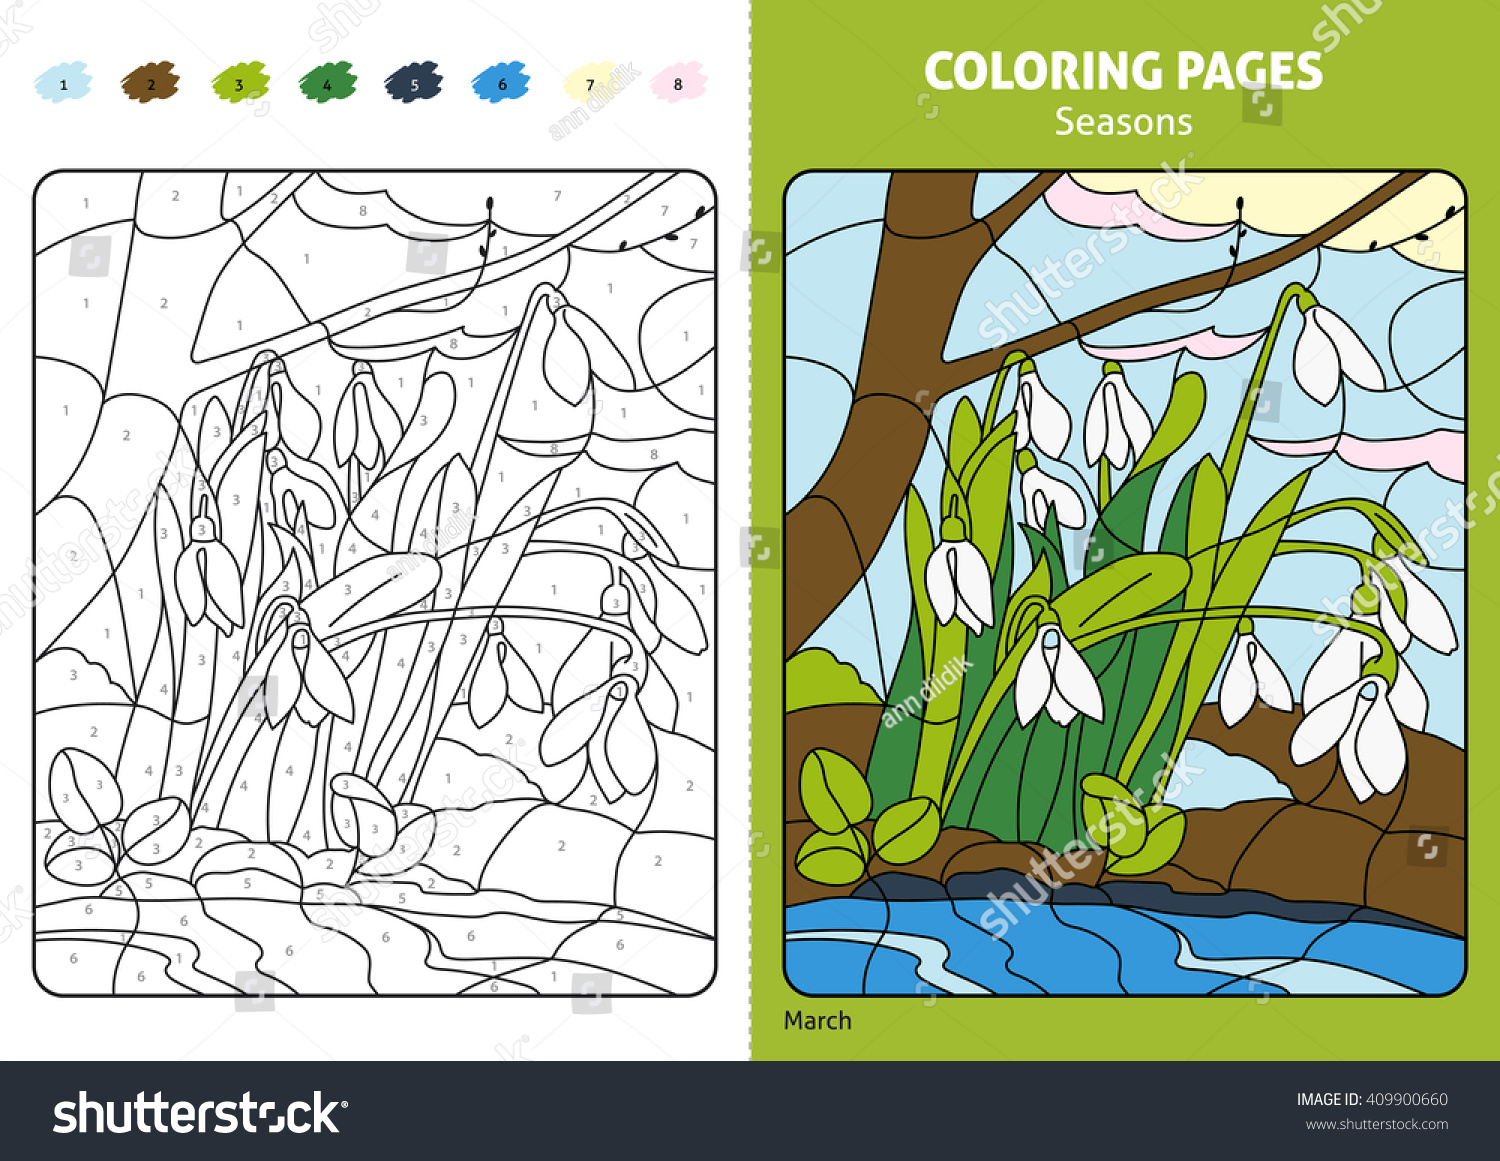 Seasons Coloring Page Kidsprintable Design Coloring Stock Vector ...